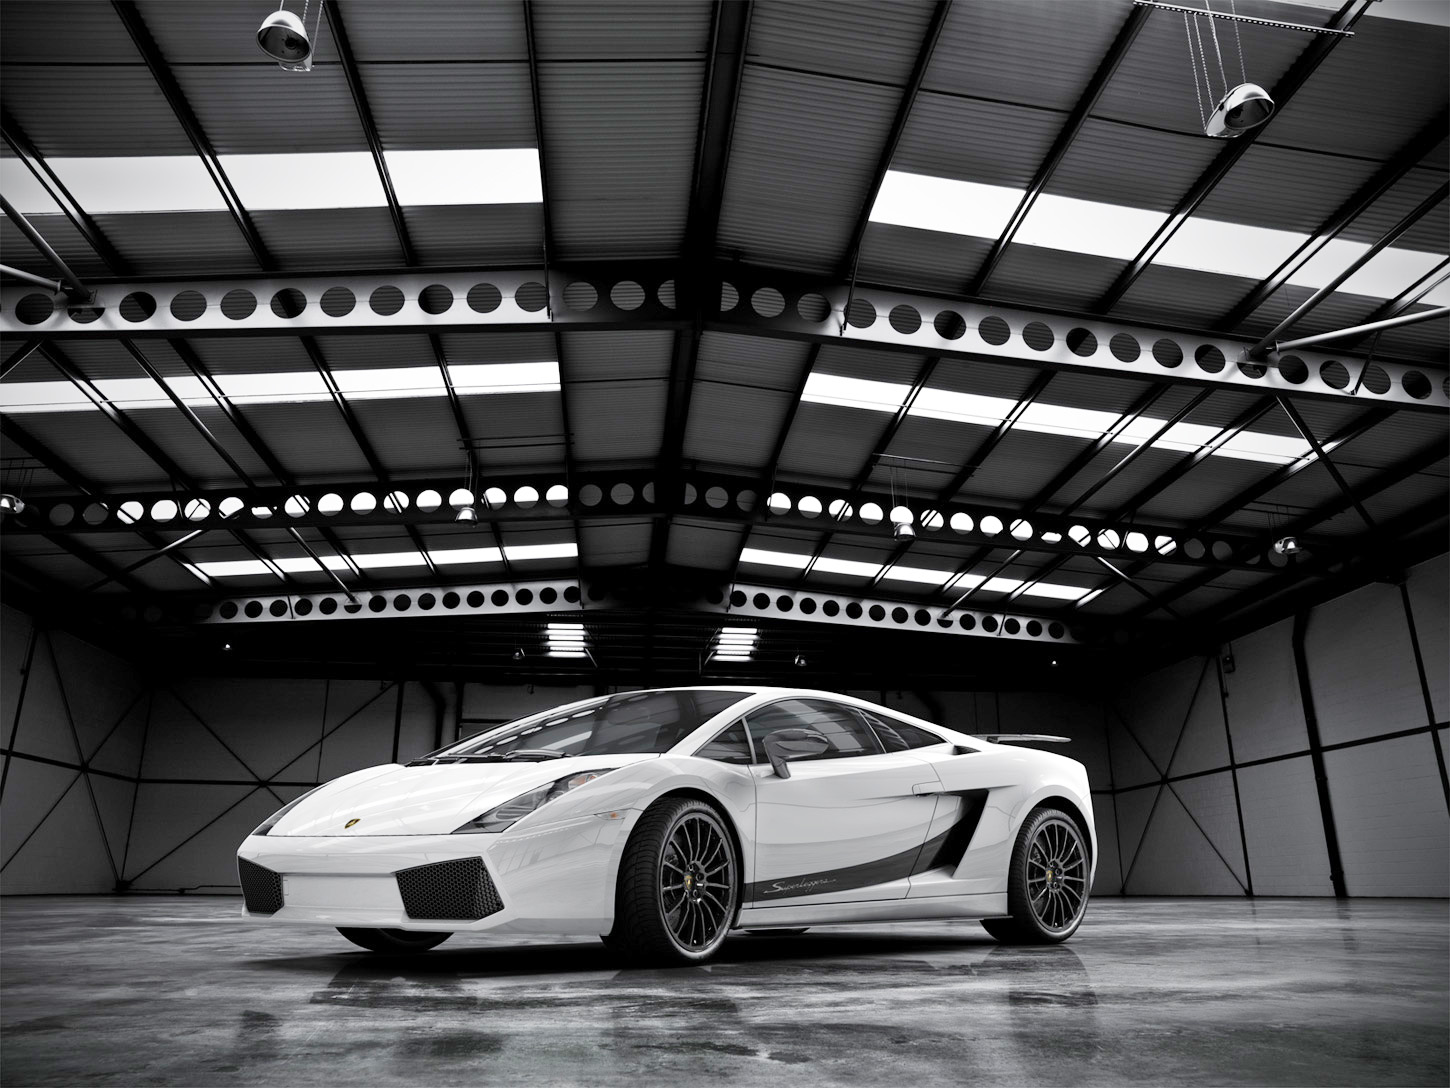 White Lamborghini Superleggera by MUCK-ONE